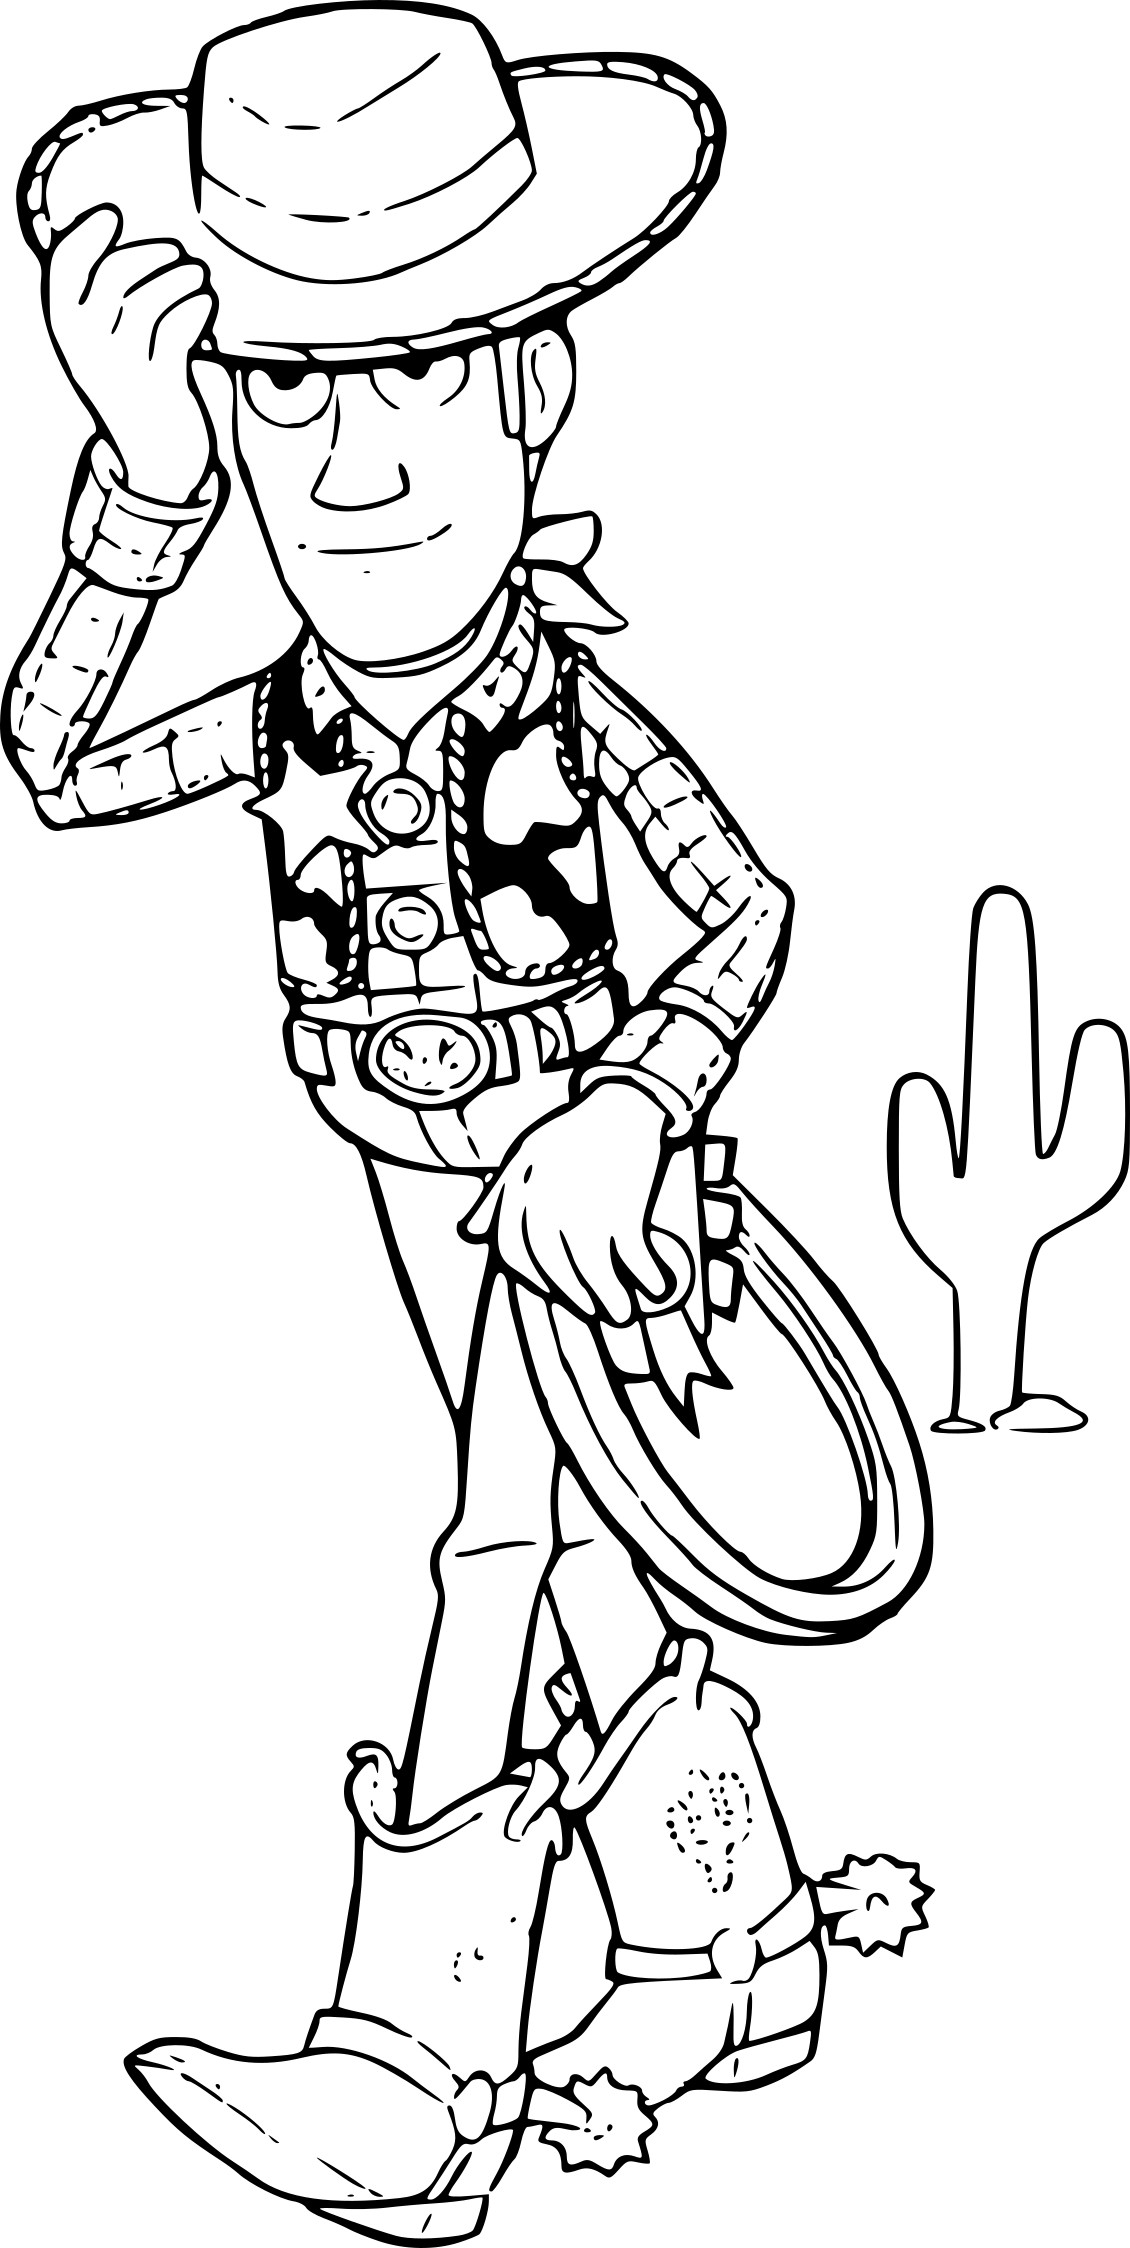 Coloriage Disney Woody.Coloriage Sherif Woody A Imprimer